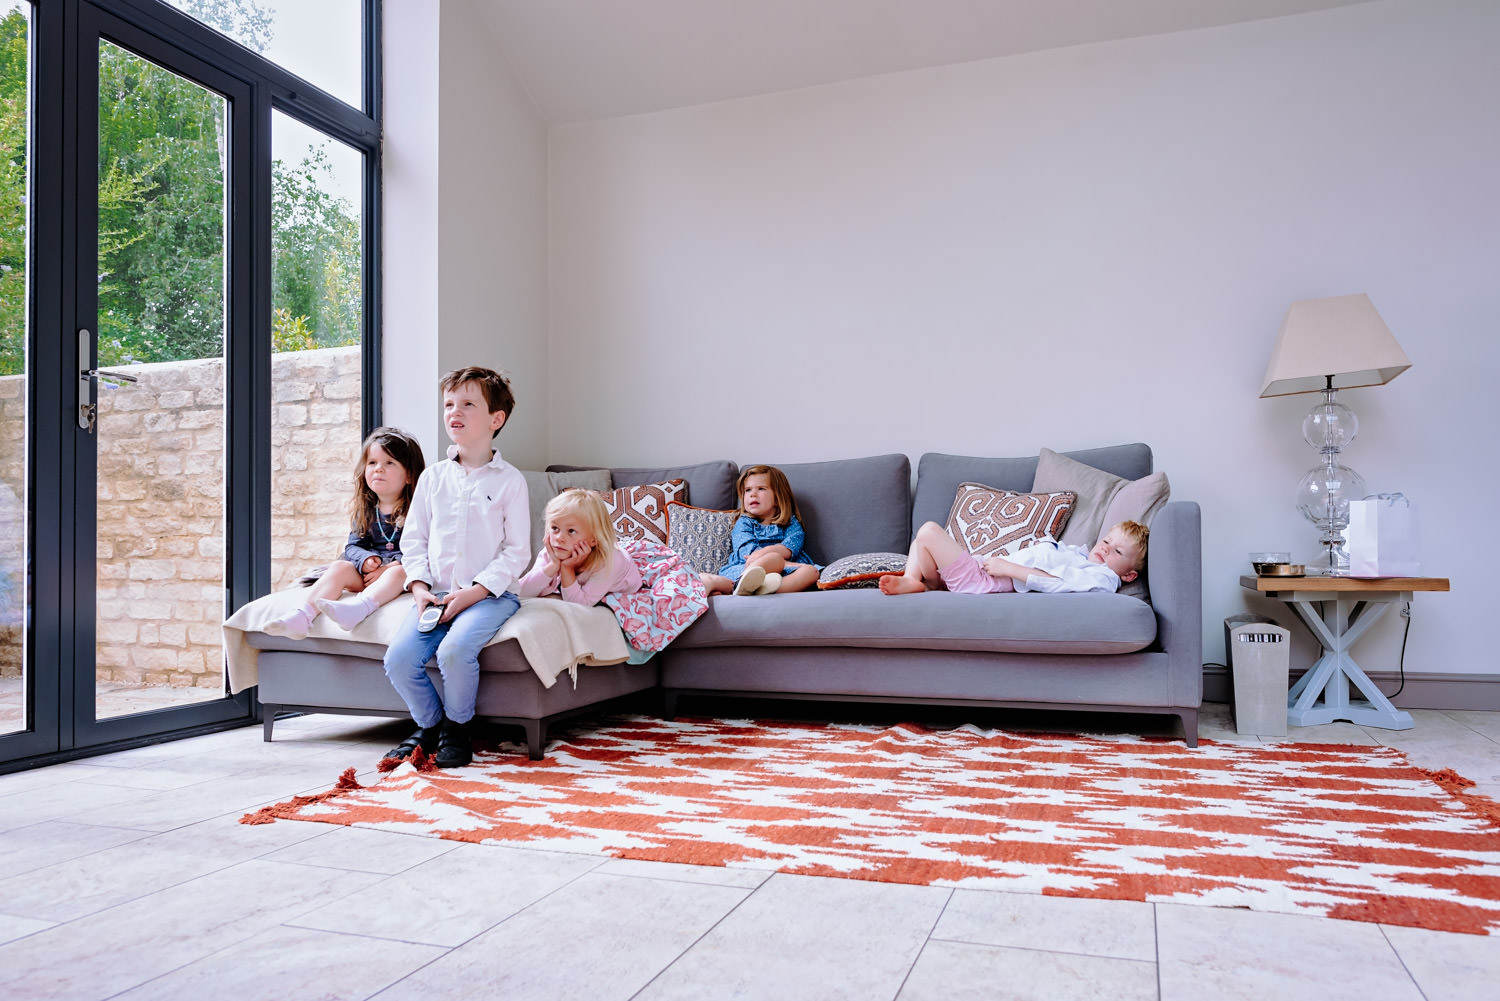 Five children relaxing on a giant grey corner sofa as they watch TV